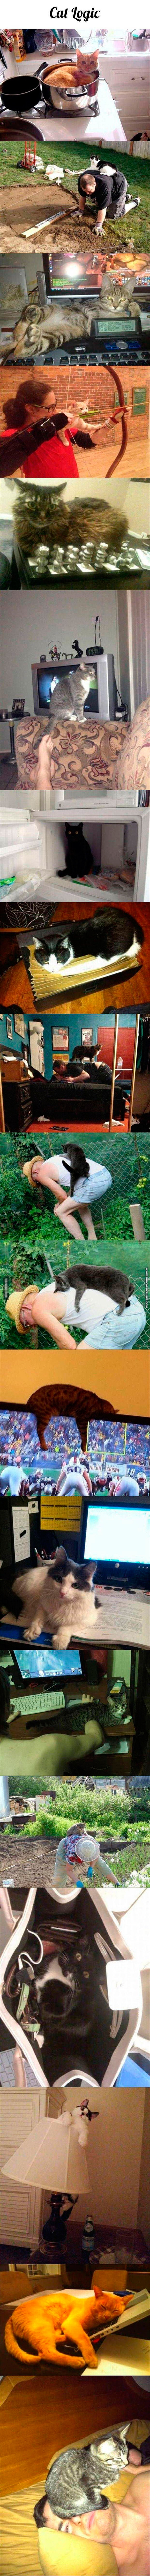 funny cat pictures without logic